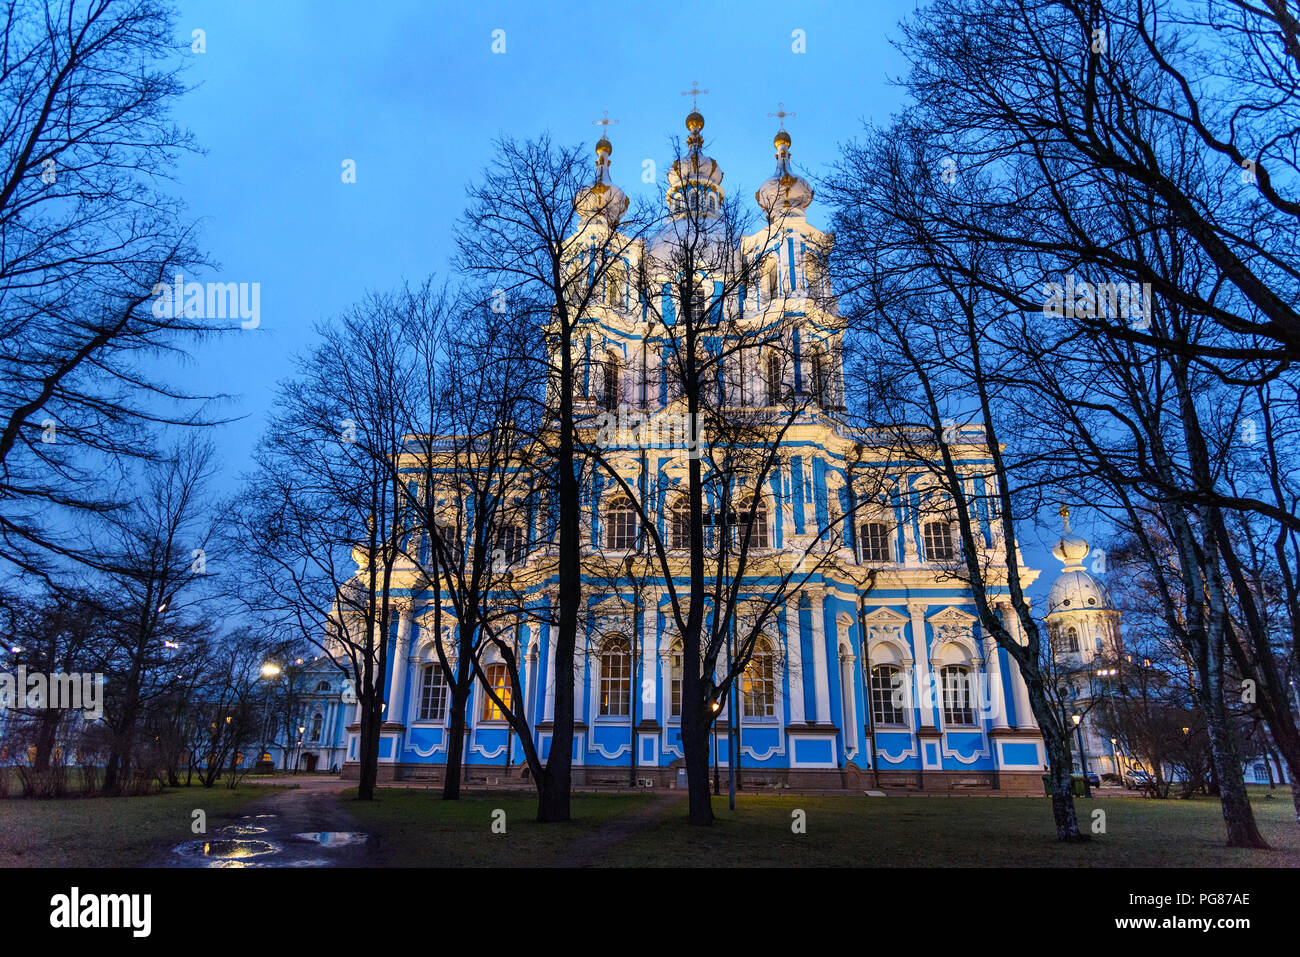 Smolny Cathedral at night in Saint Petersburg. Russia - Stock Image